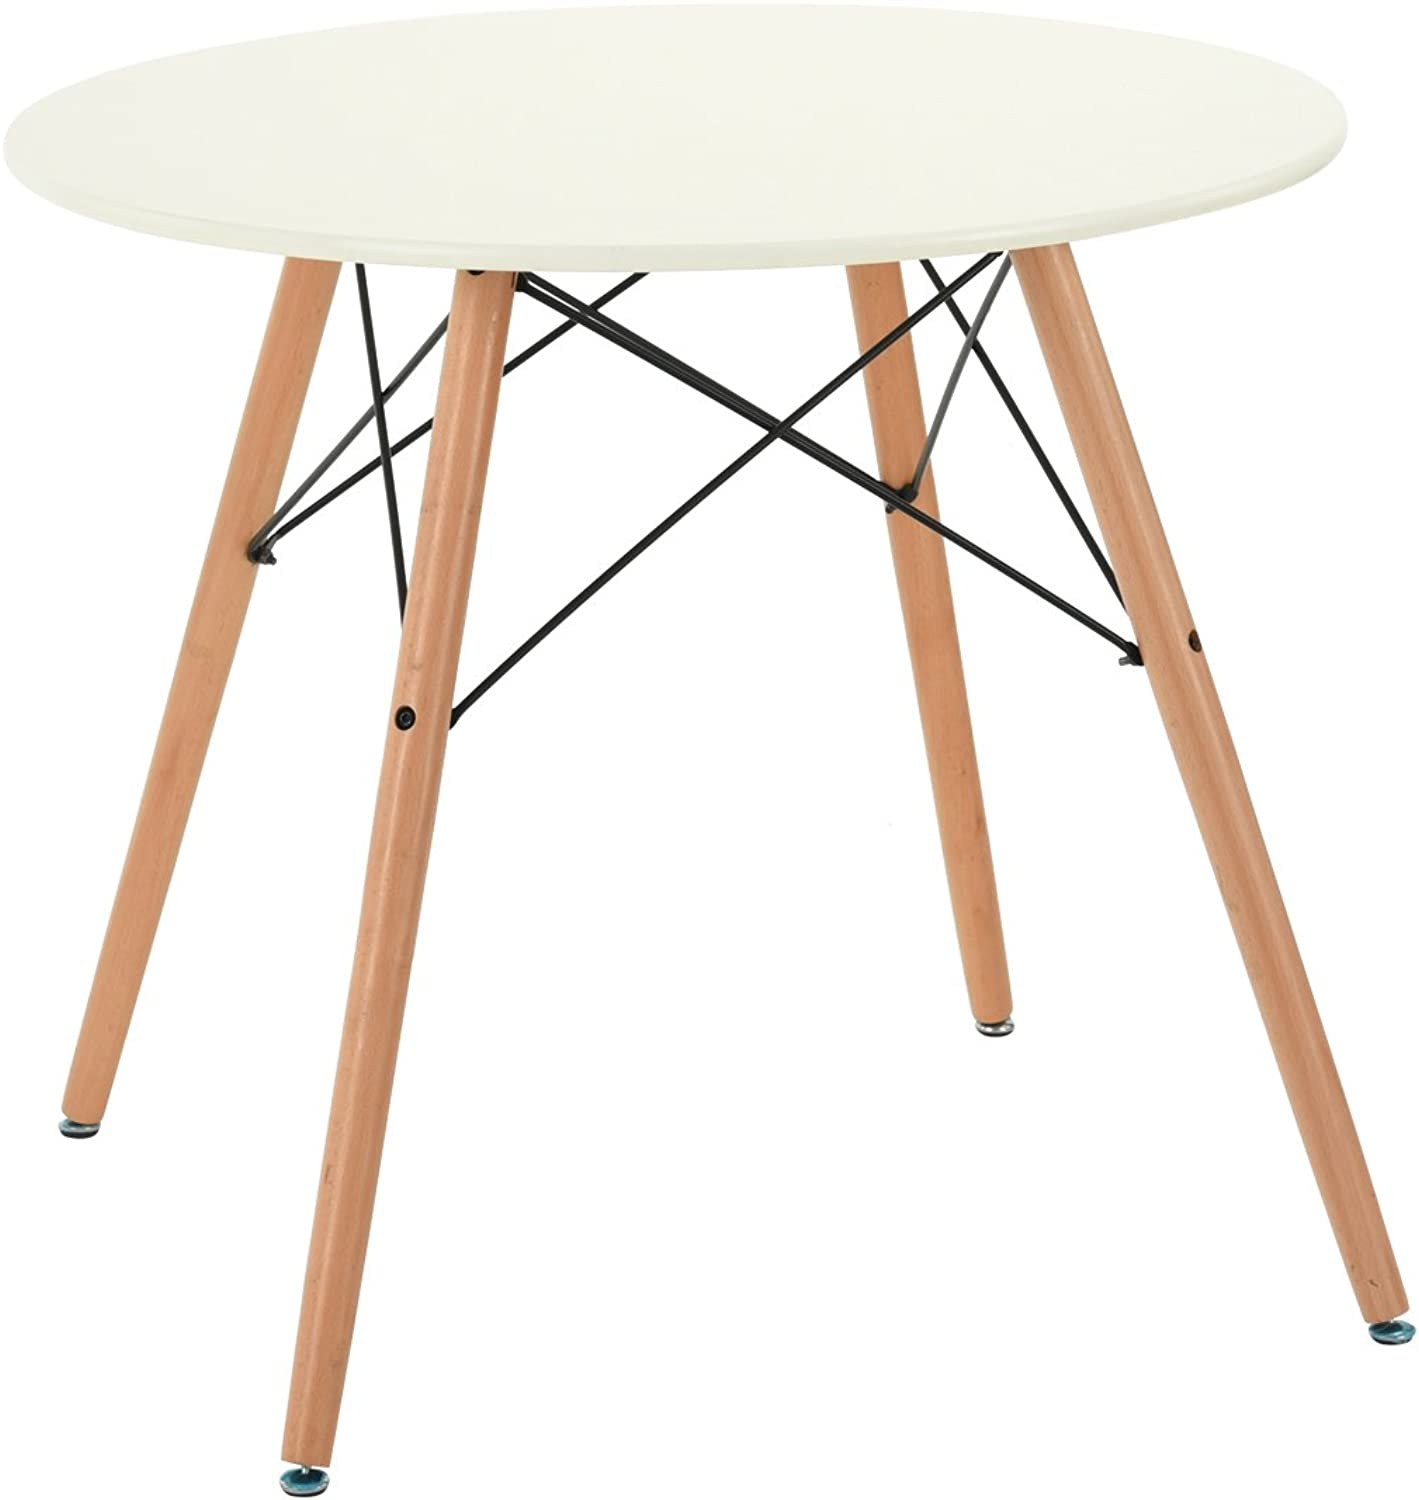 Kitchen Dining Table, FurnitureR Modern White Round Coffee Table Leisure Wooden Tea Table Office Conference Desk 31Inch